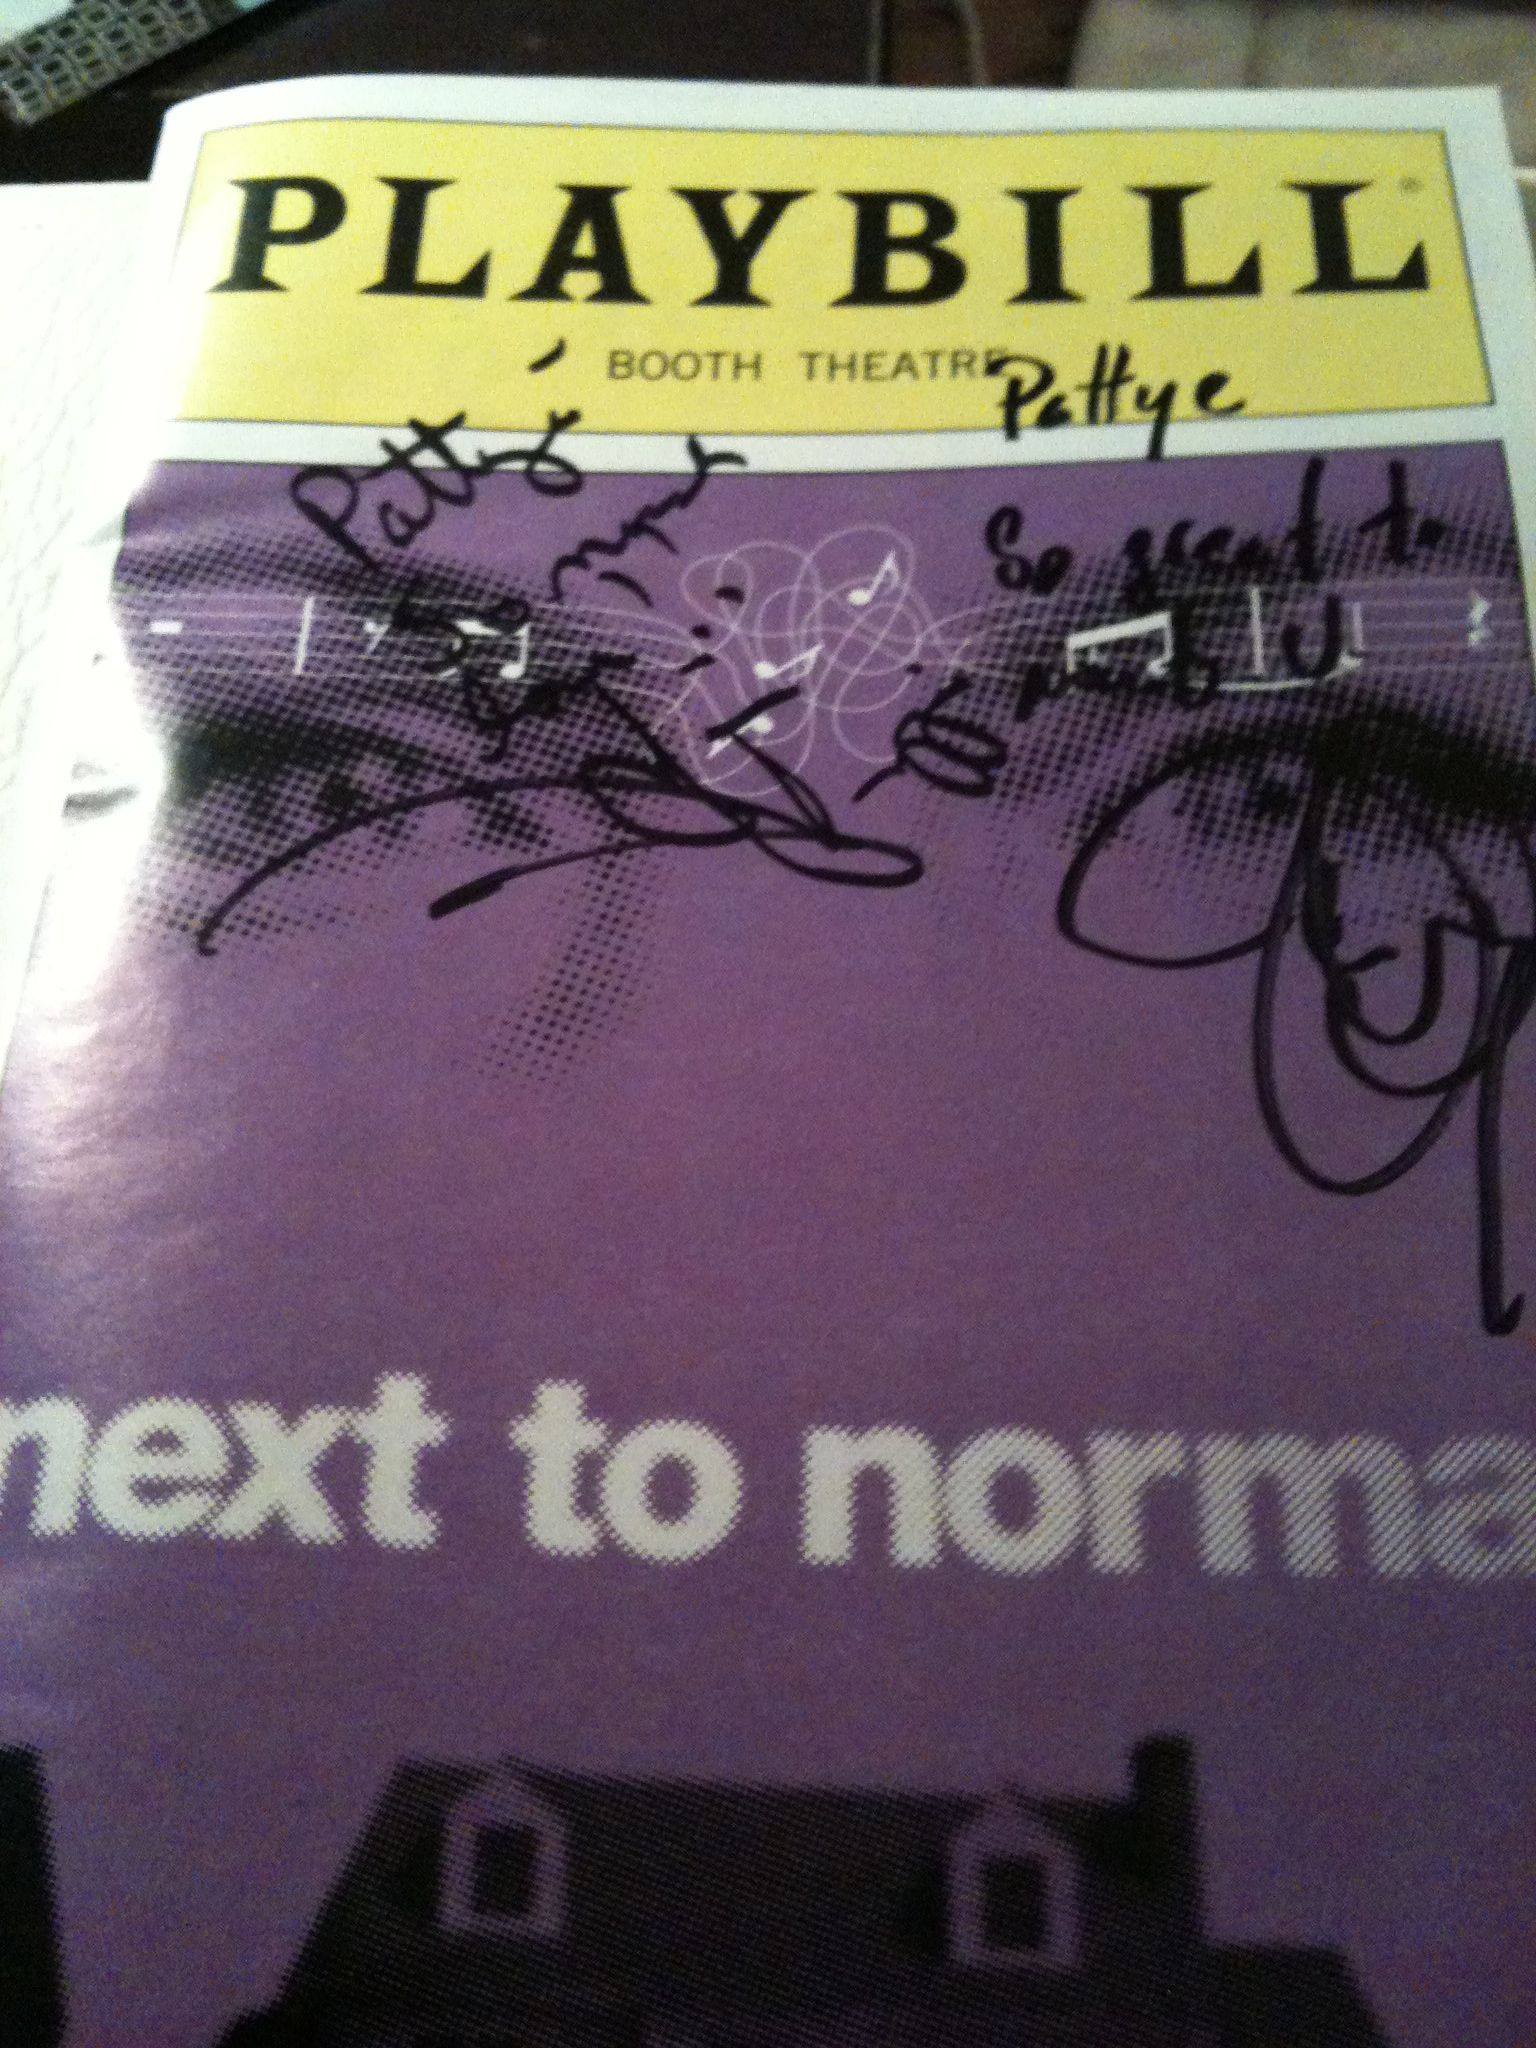 #Broadway #Theatre I was so honored to not only see Marin Mazzie, Jason Danieley and @Kyle Dean perform in Next to Normal, but to get to meet them backstage! One of my NYC highlights, for sure!